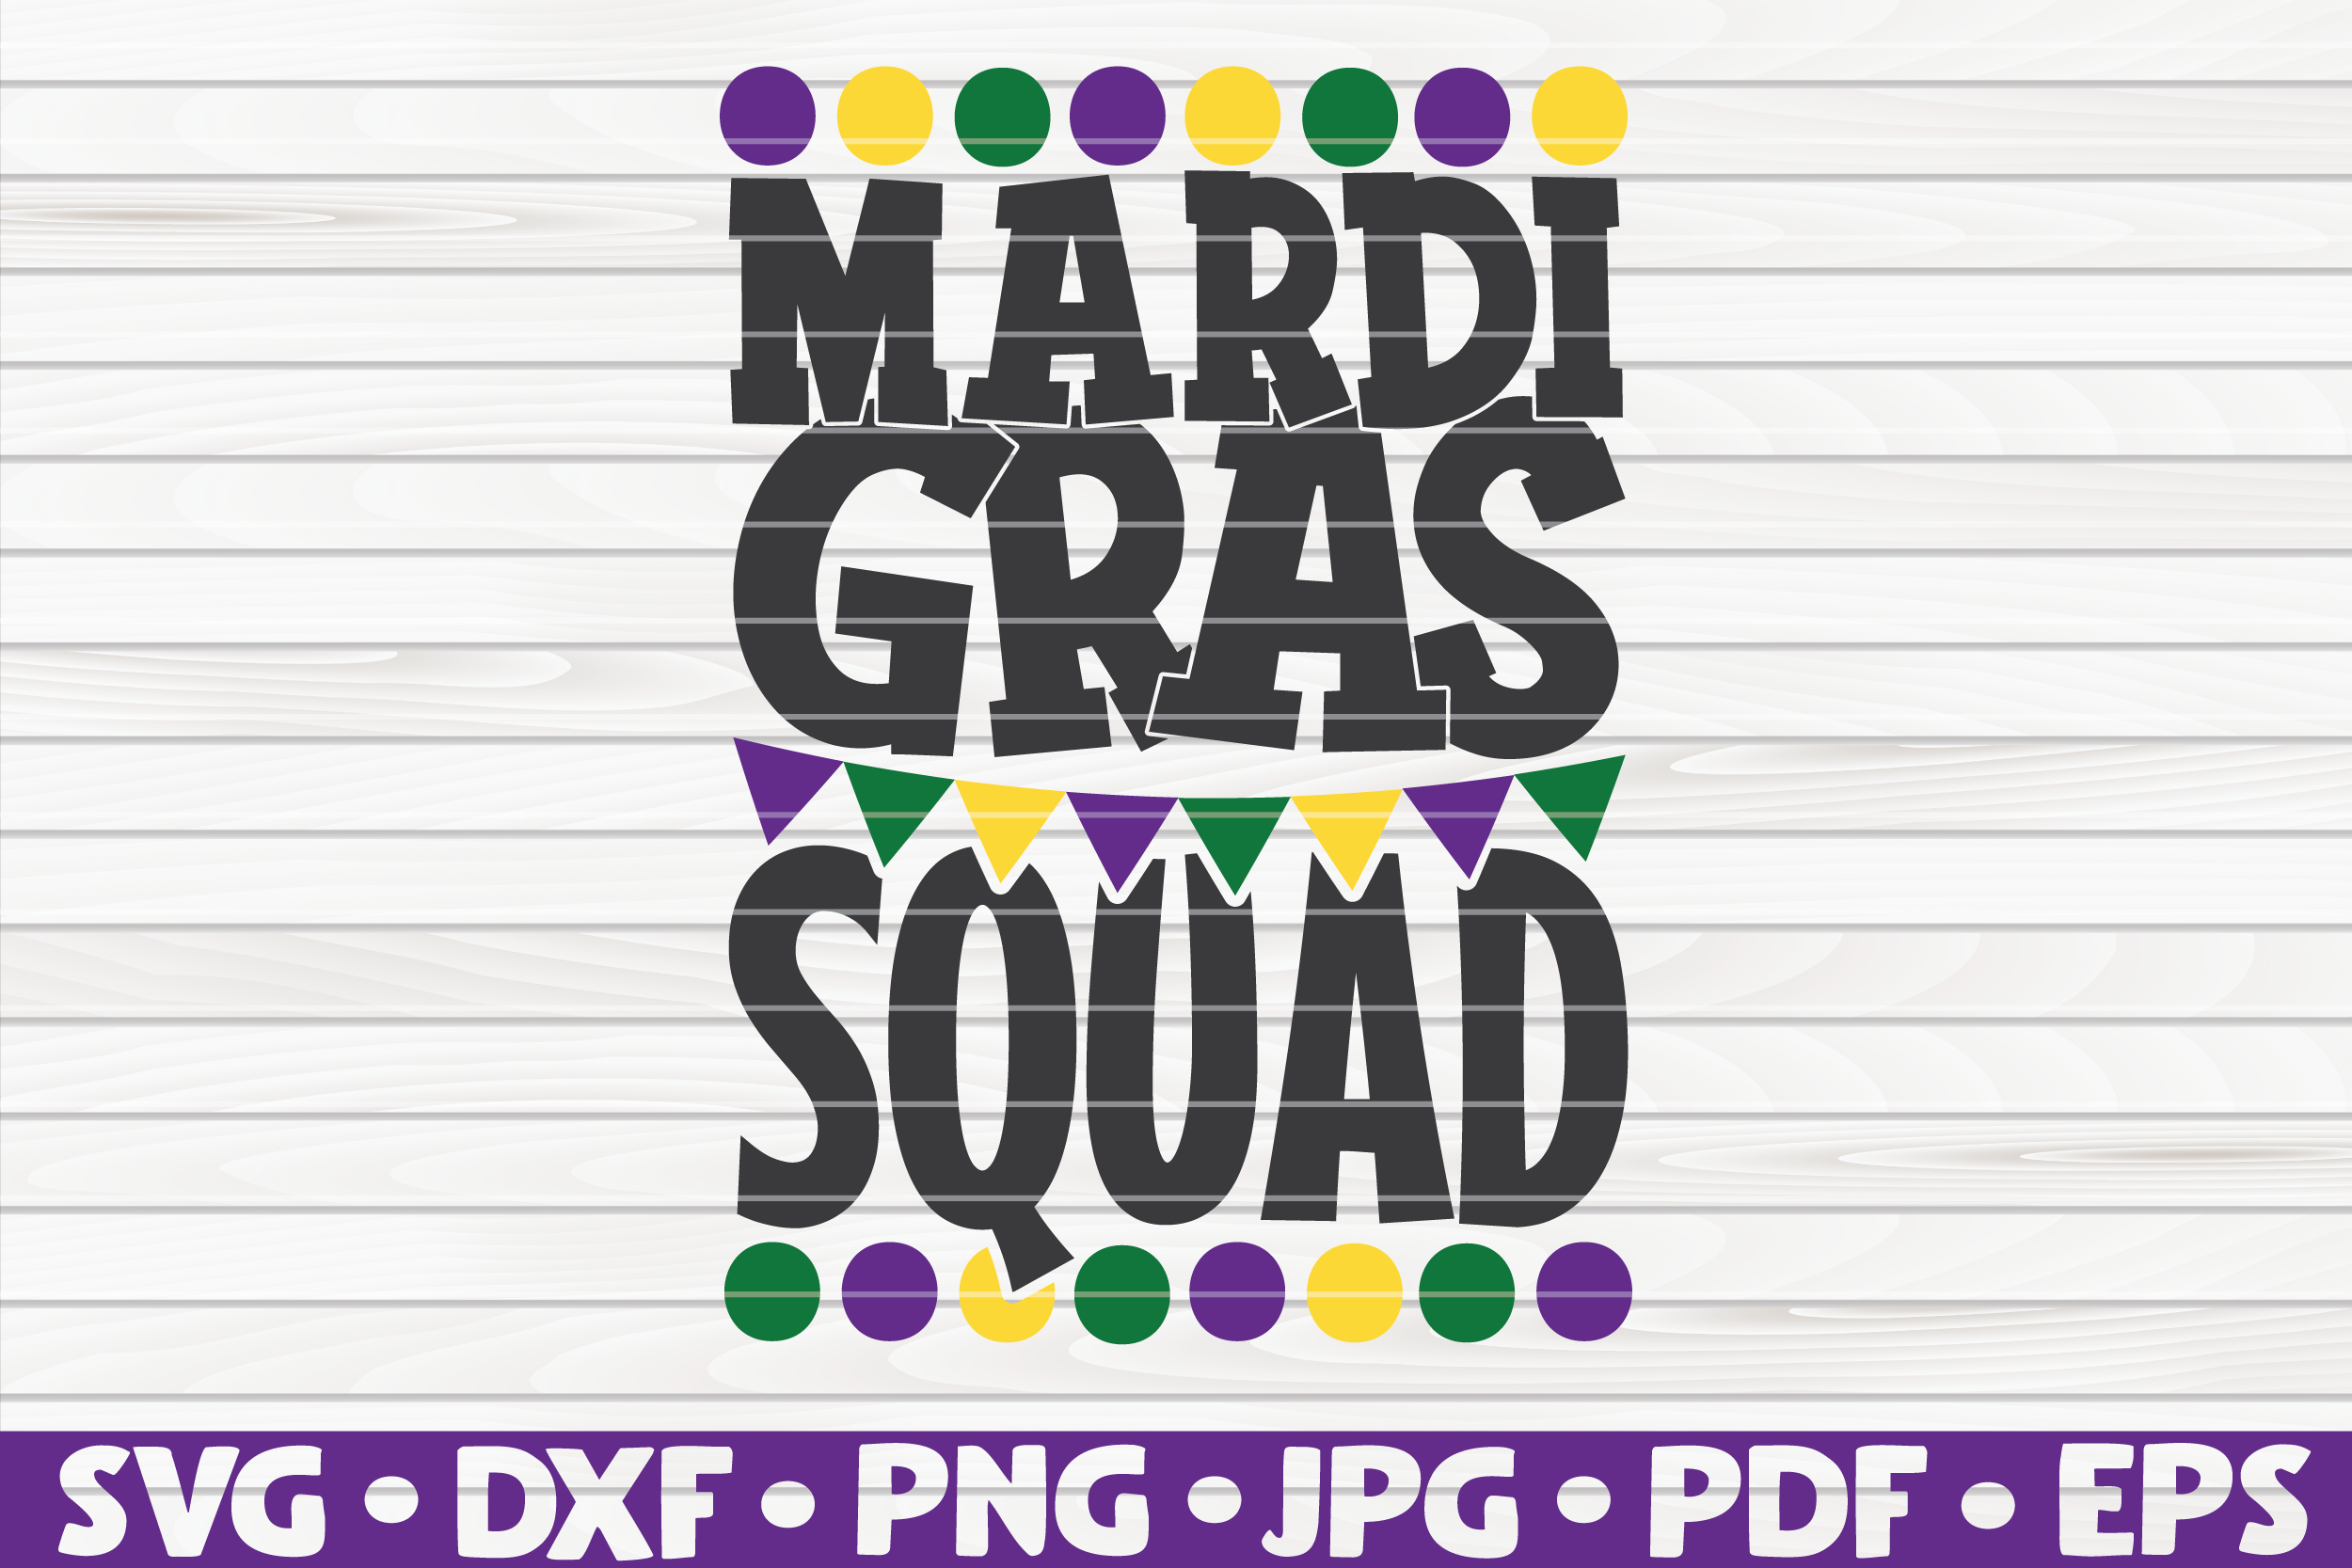 Download Free Mardi Gras Squad Graphic By Mihaibadea95 Creative Fabrica for Cricut Explore, Silhouette and other cutting machines.